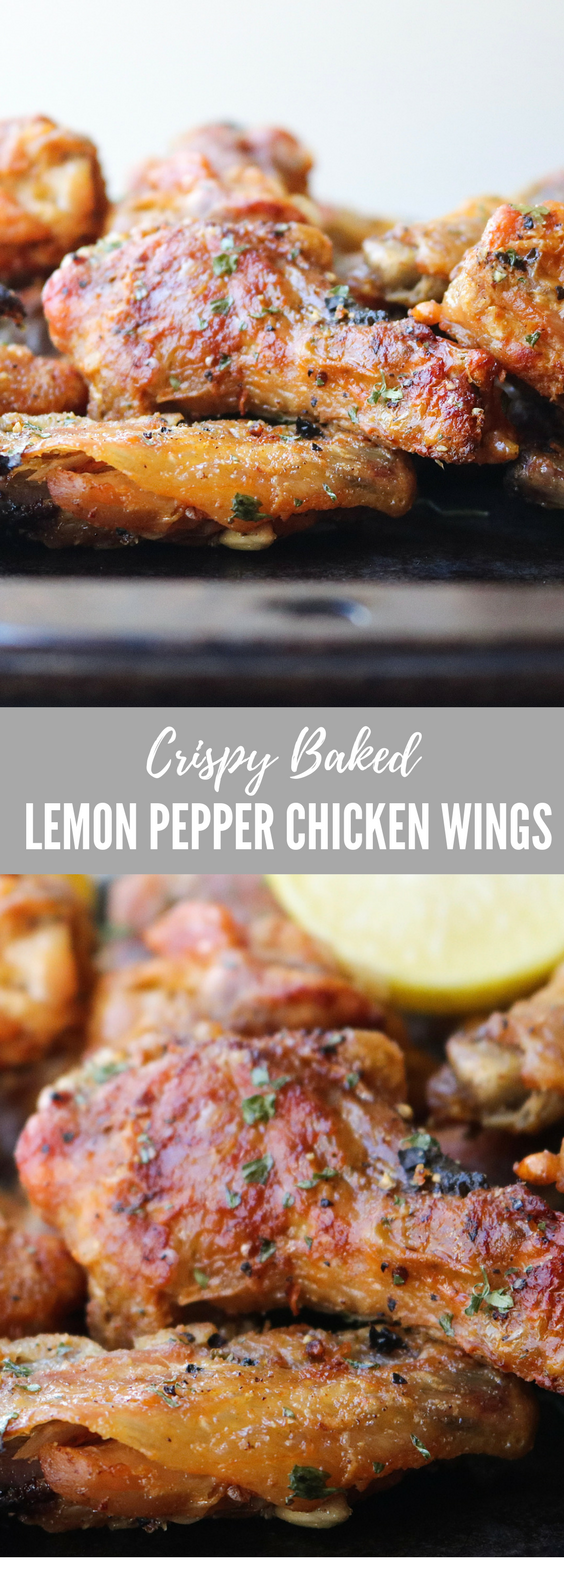 Crispy Baked Lemon Pepper Chicken Wings | All the Healthy Things.png